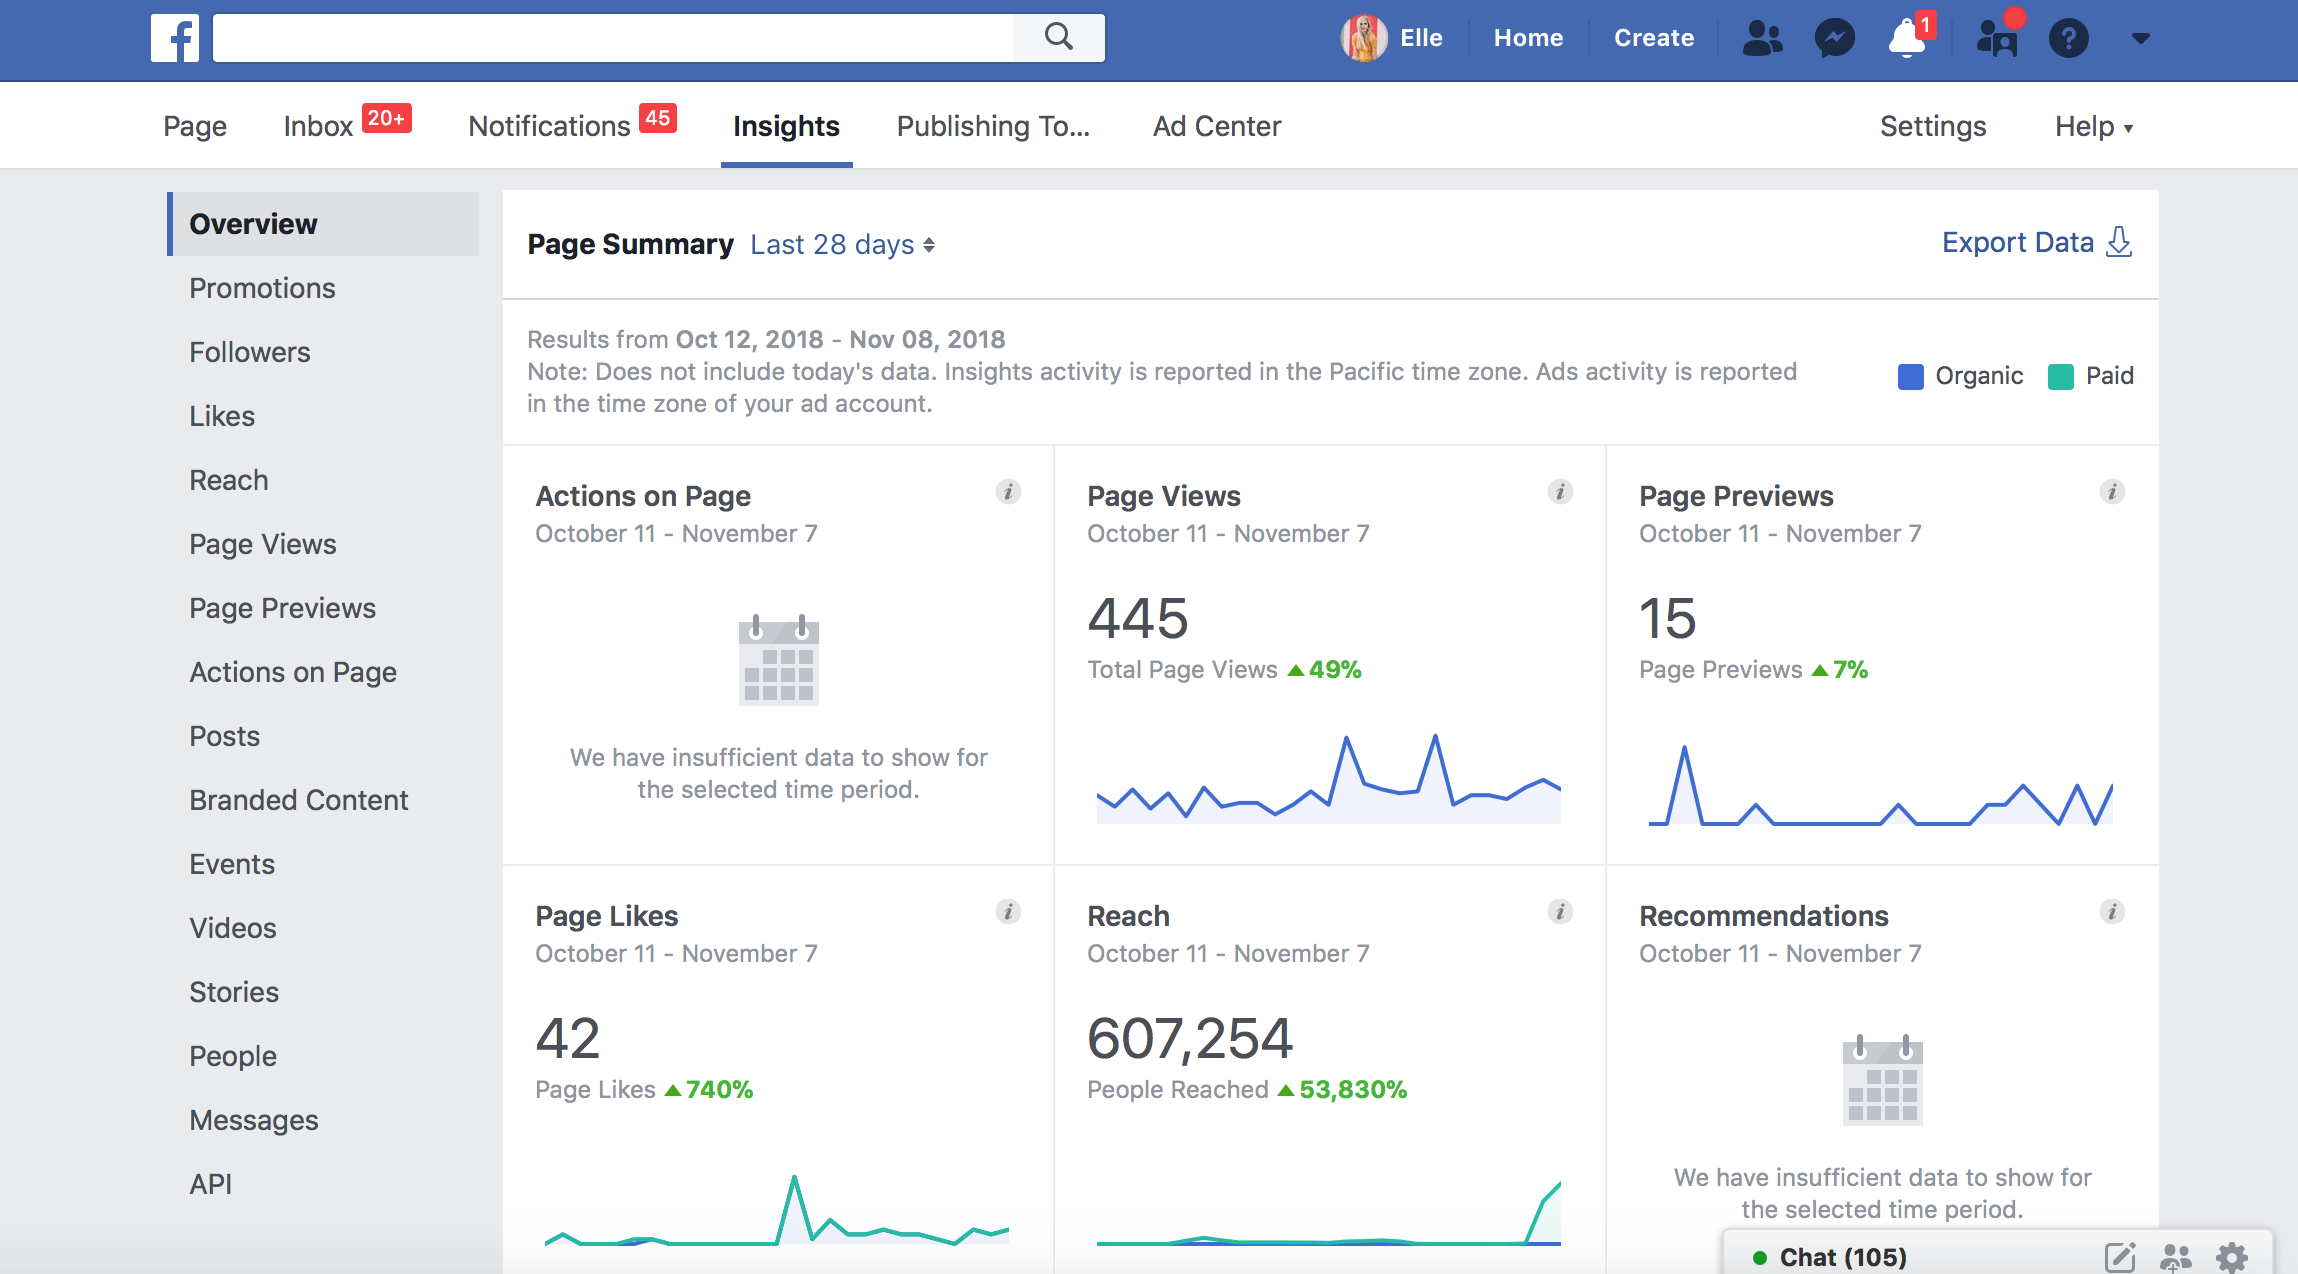 social-media-management-manager-facebook-30dayanalytics-instagram-outsourcing-results-insights-growth-01